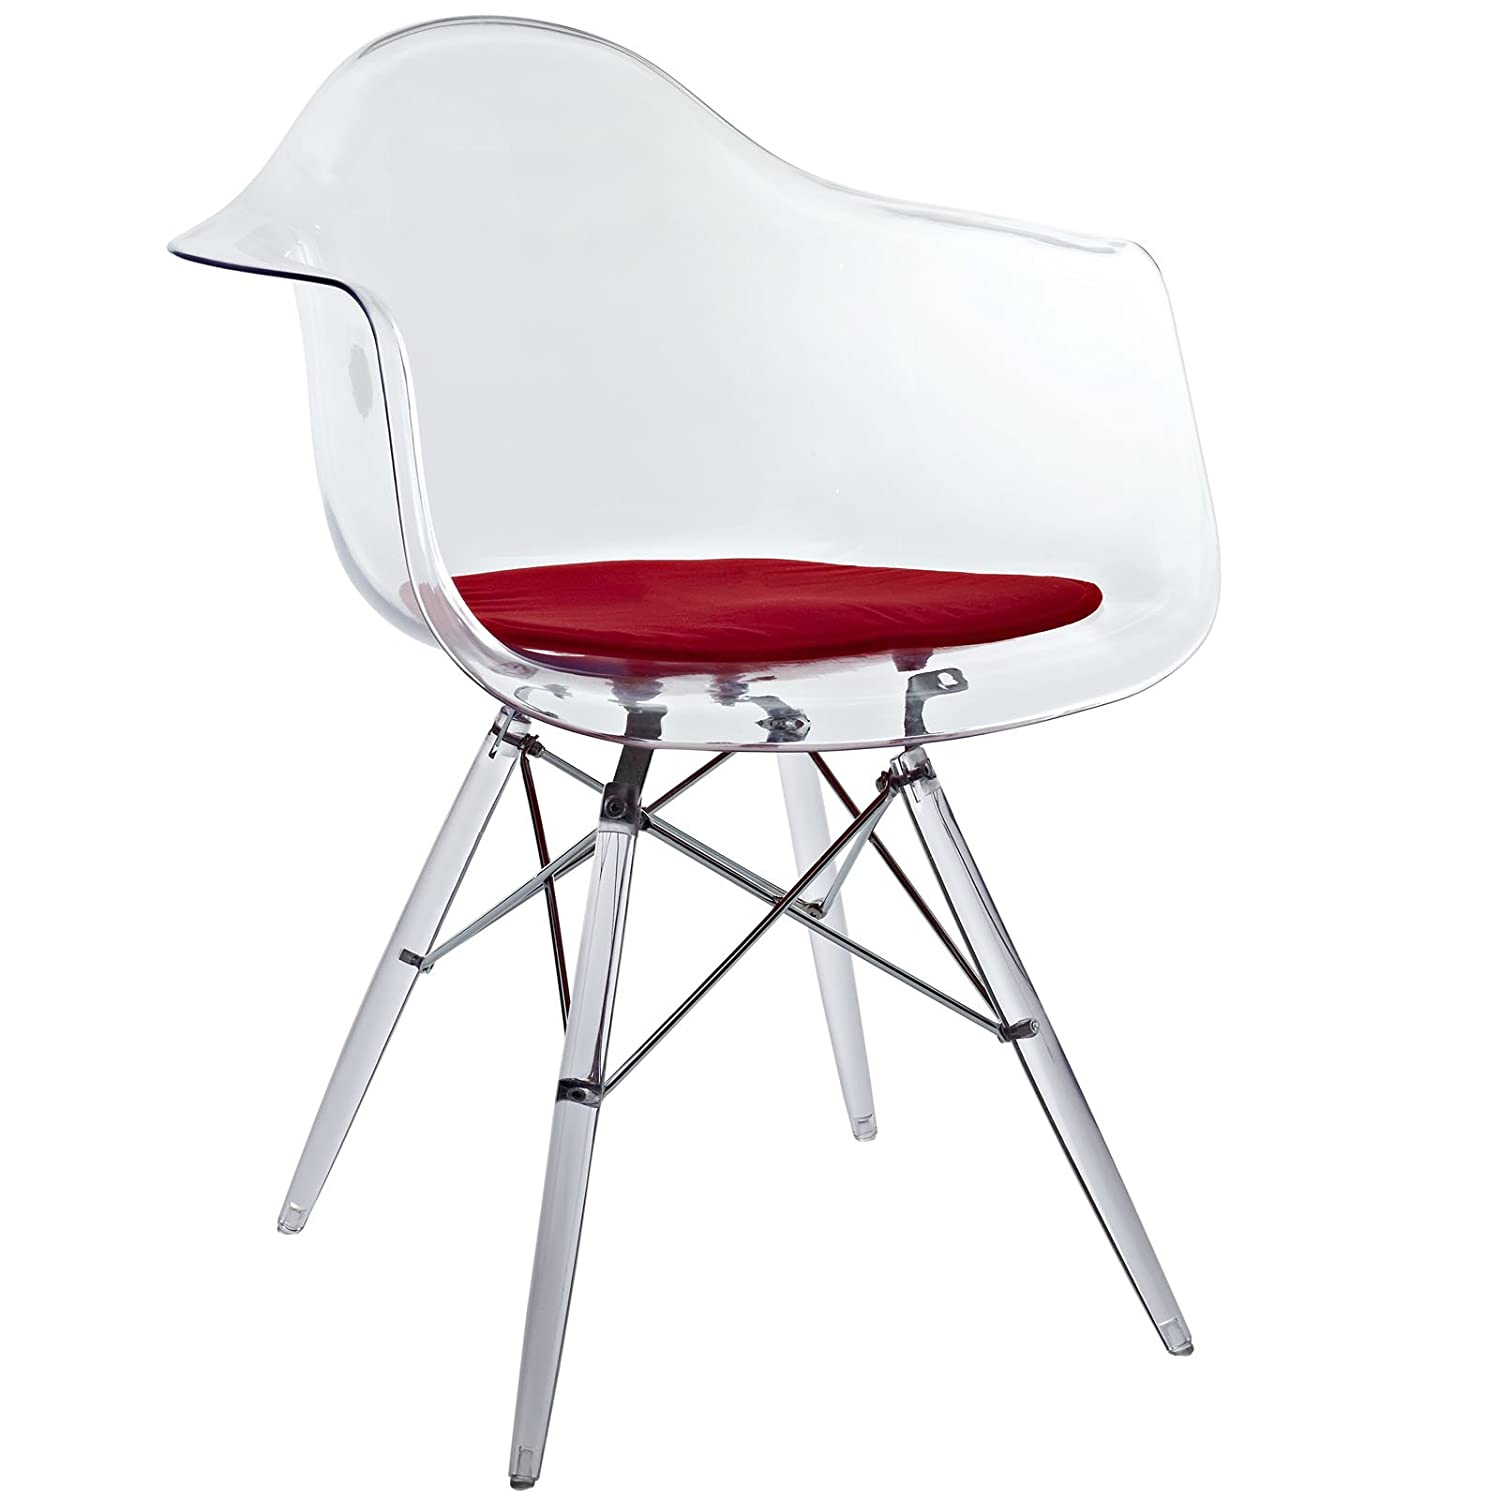 with meets modern eames cleaning and dining easy urbanmod century set star of chair products wipe style ergoflex abs plastic wonder new mid chairs one by eifel assemble comfortable furniture piece